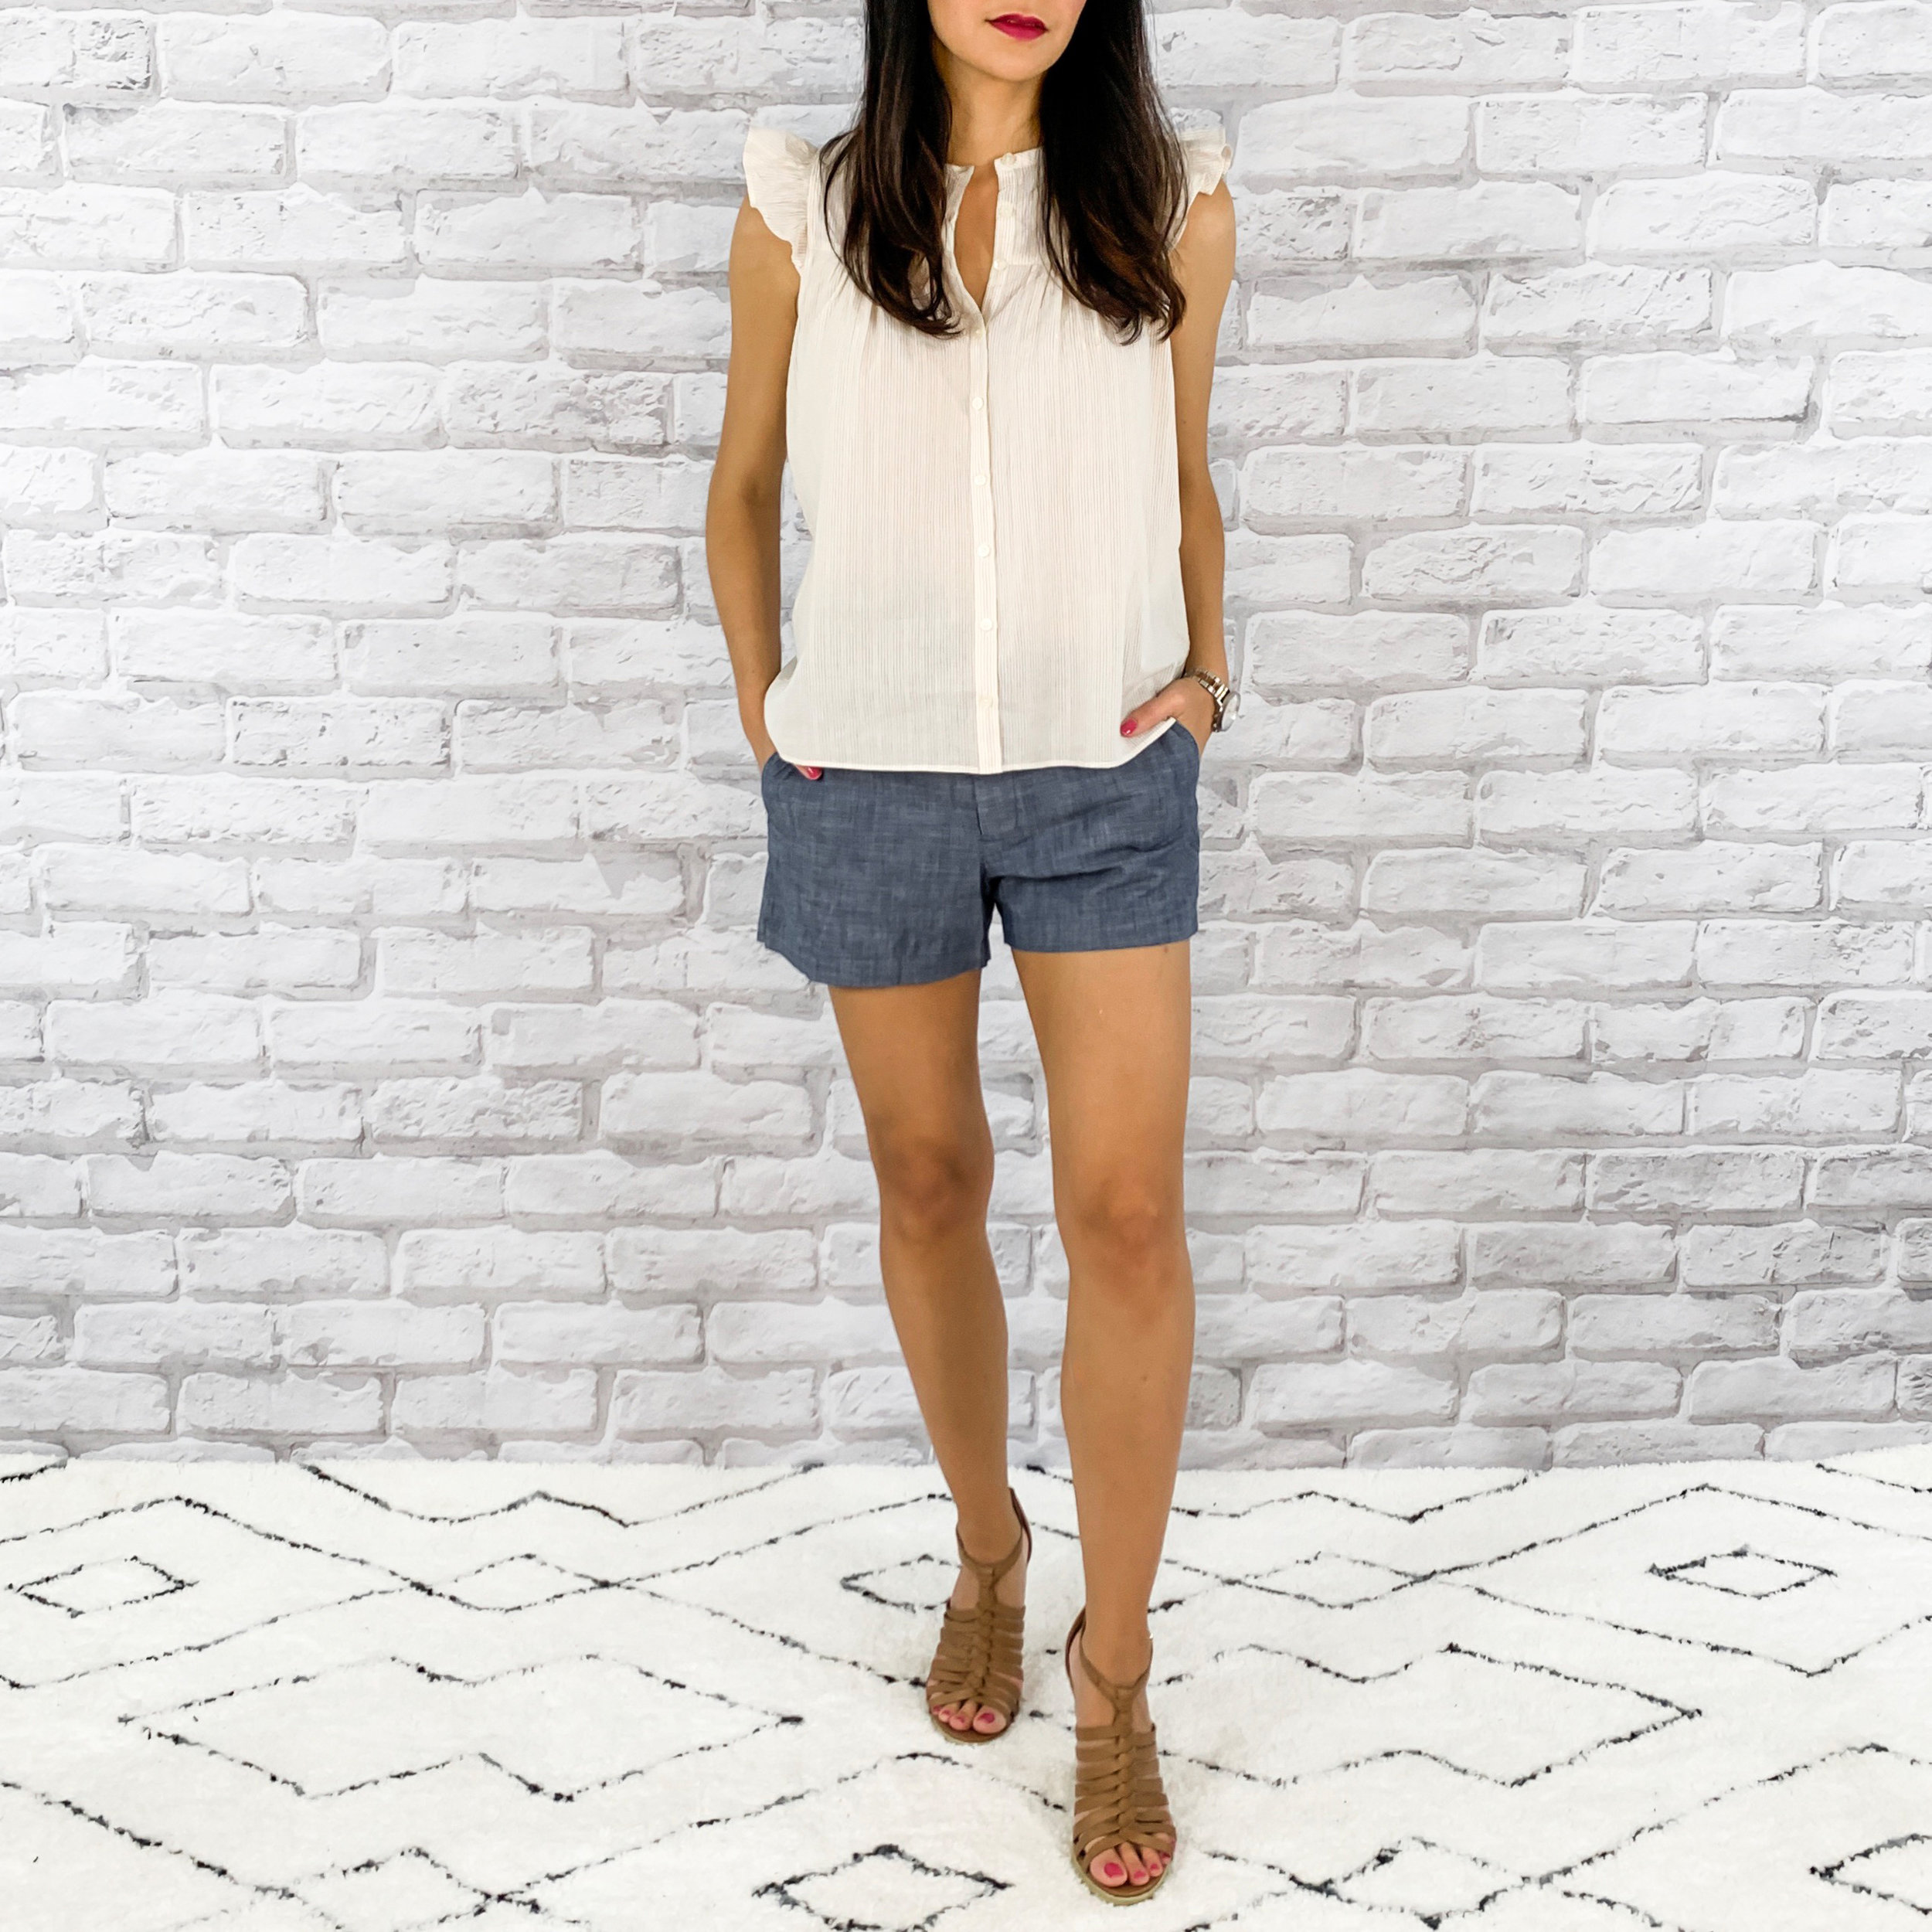 — OUTFIT DETAILS —    Madewell Top    |    Gap Shorts     |   Sam Edelman Shoes   — CCW DETAILS —    StealthGearUSA Holster     | Glock 43 | Belt   {   similar   }